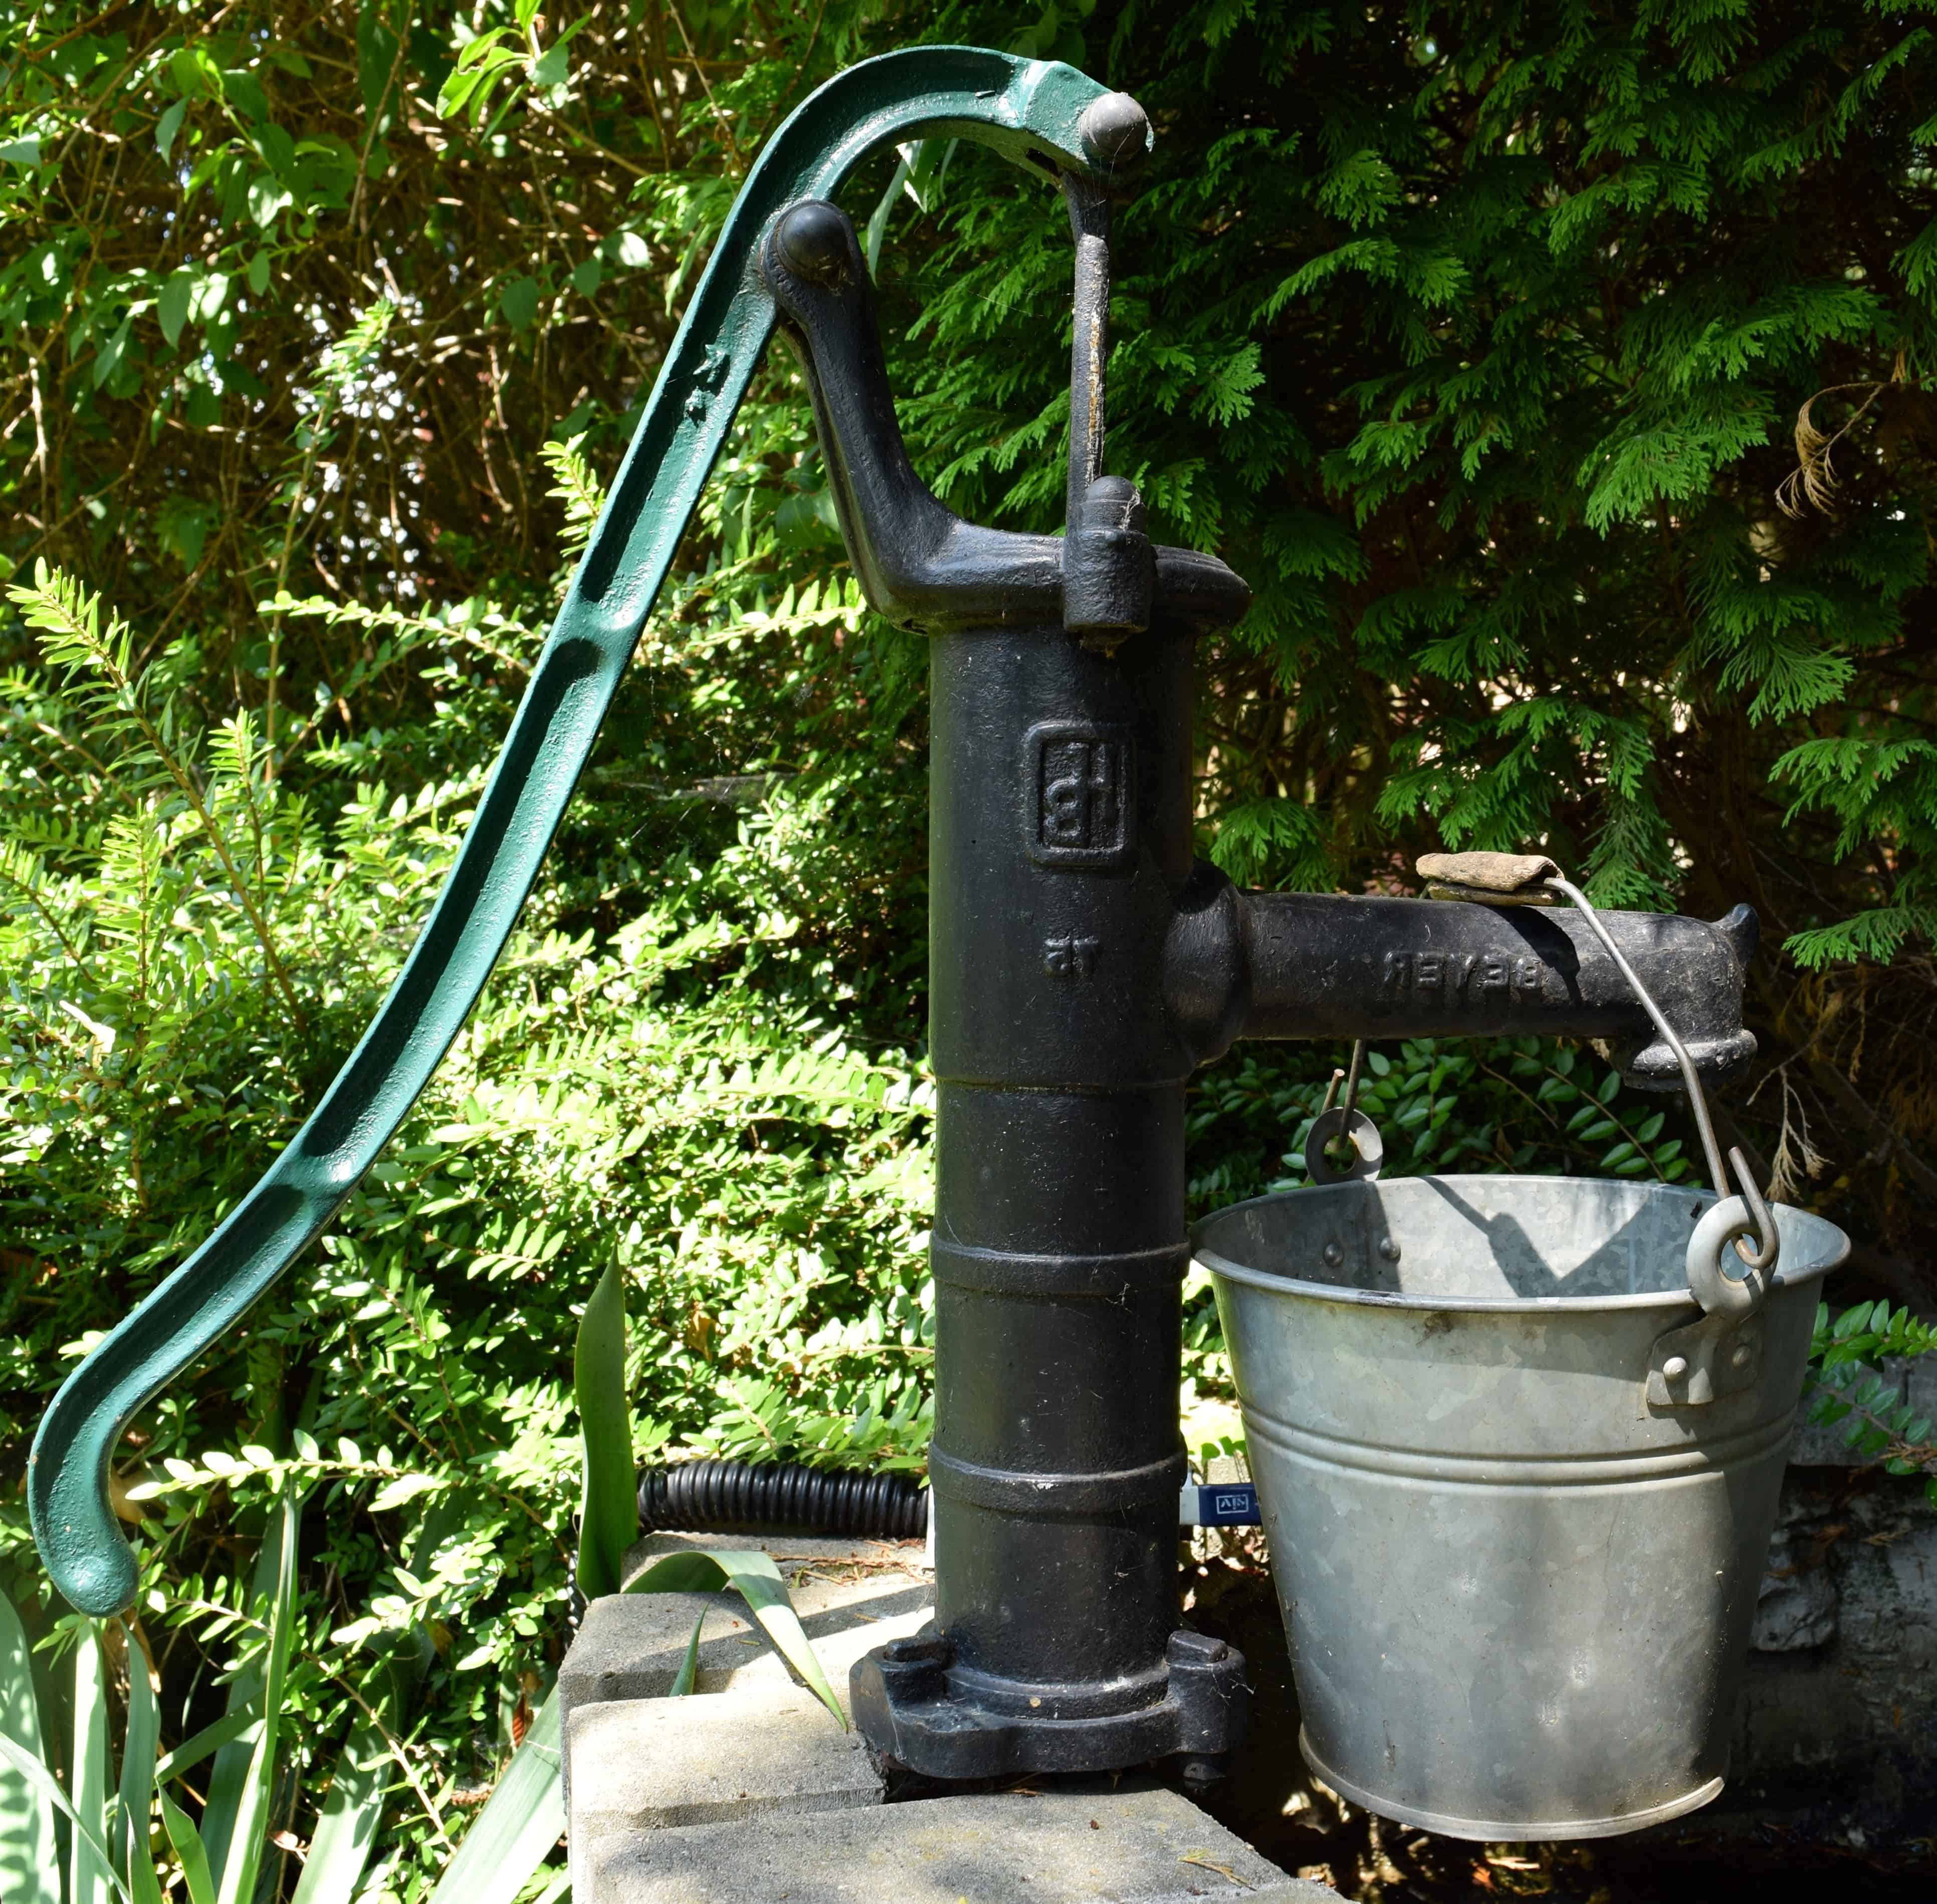 garden faucet. Water Pump, Garden, Faucet, Irrigation, Environment, Backyard, Steel, Equipment Garden Faucet T